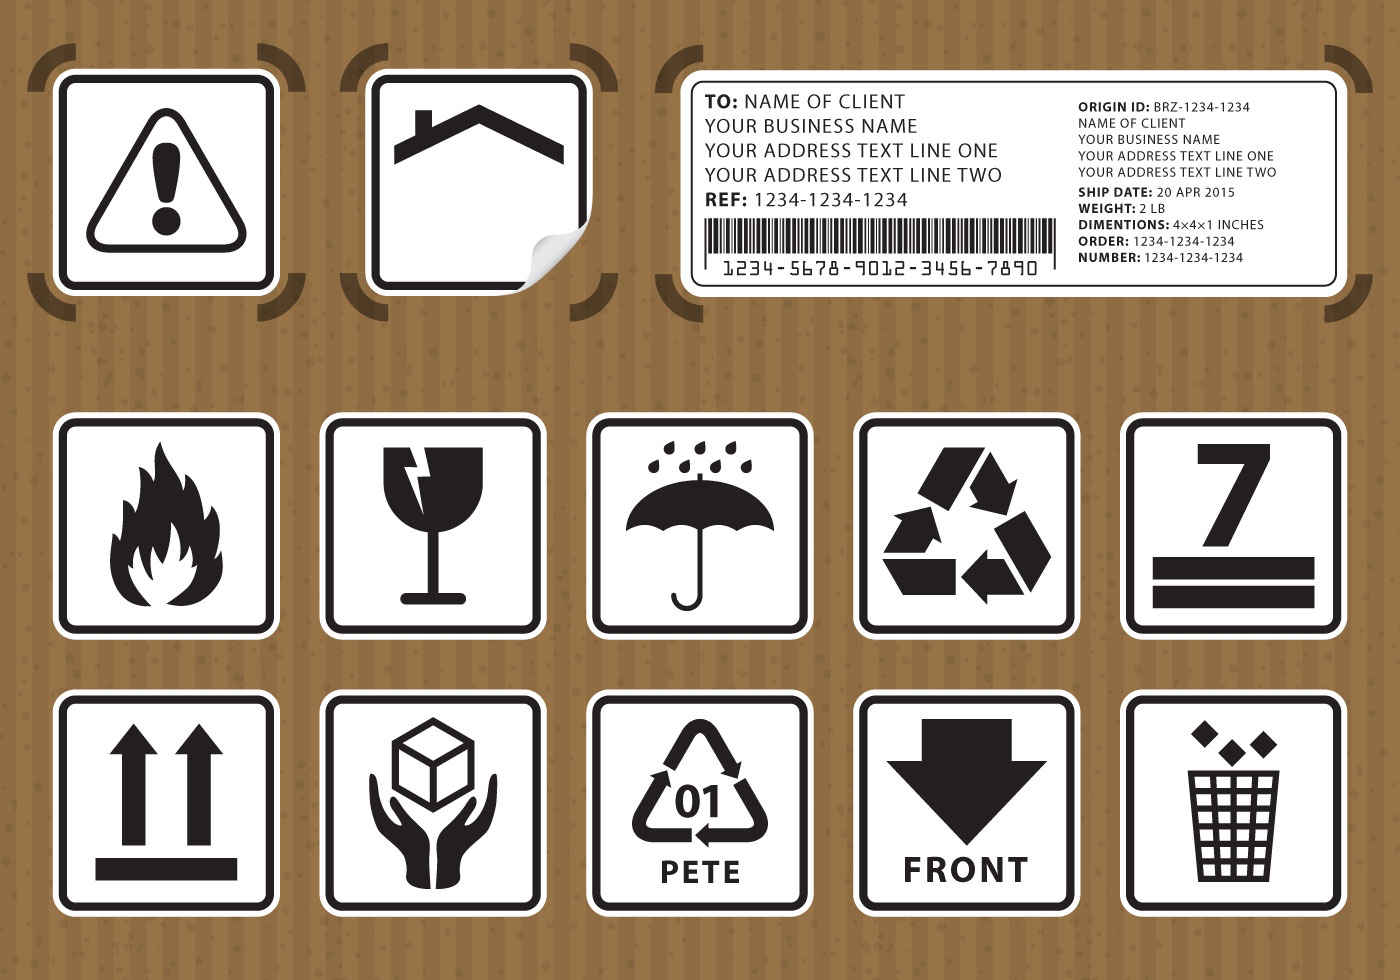 Packaging Symbols Free Vector Art 26600 Free Downloads